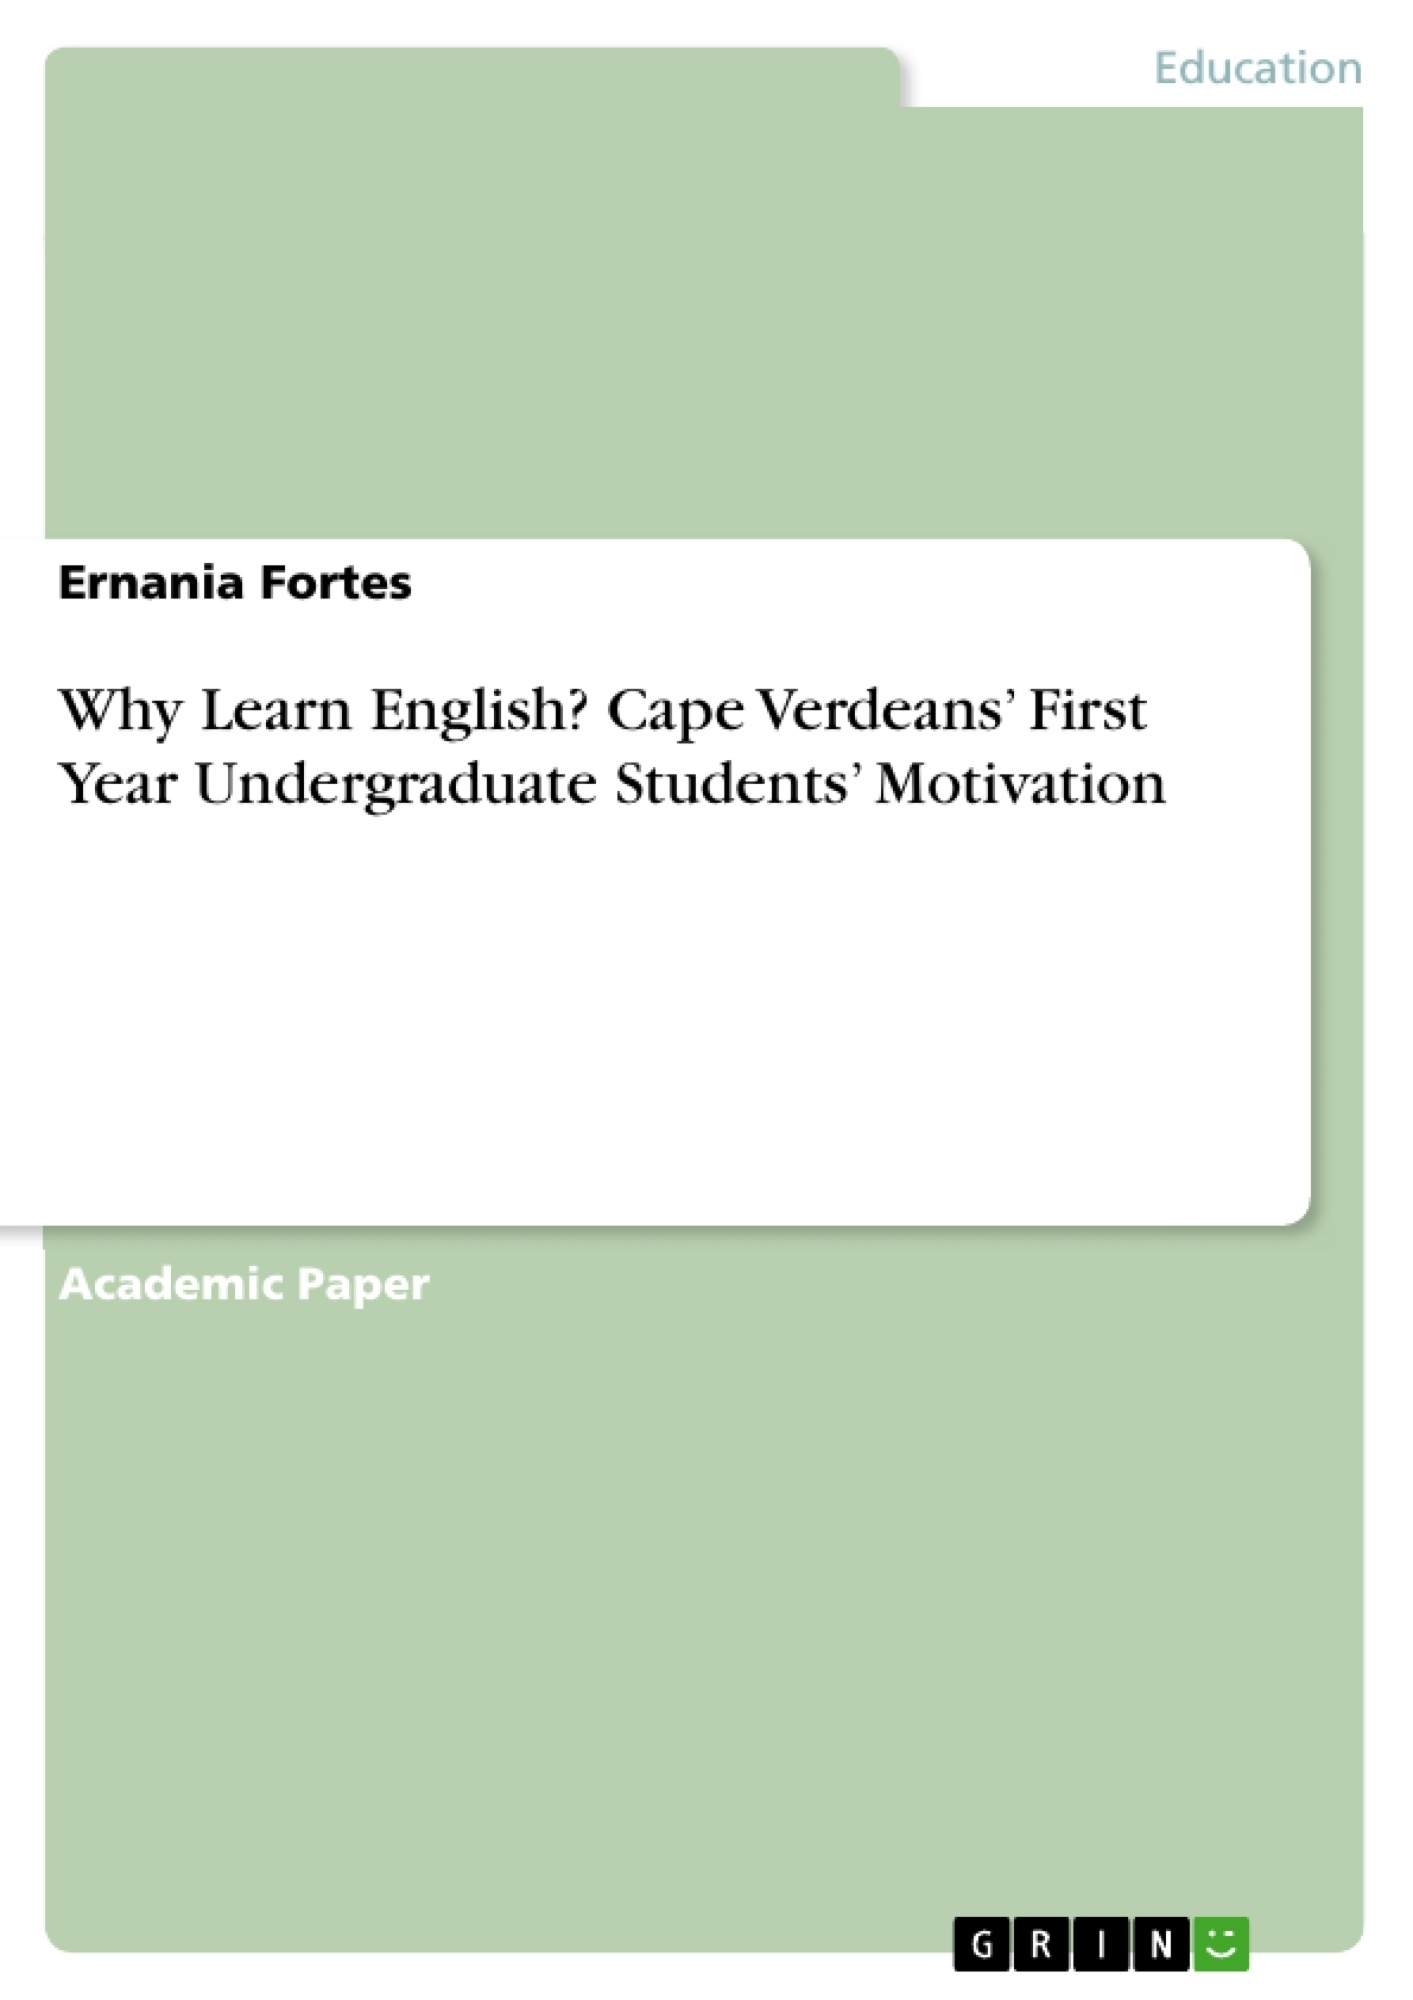 Title: Why Learn English? Cape Verdeans' First Year Undergraduate Students' Motivation